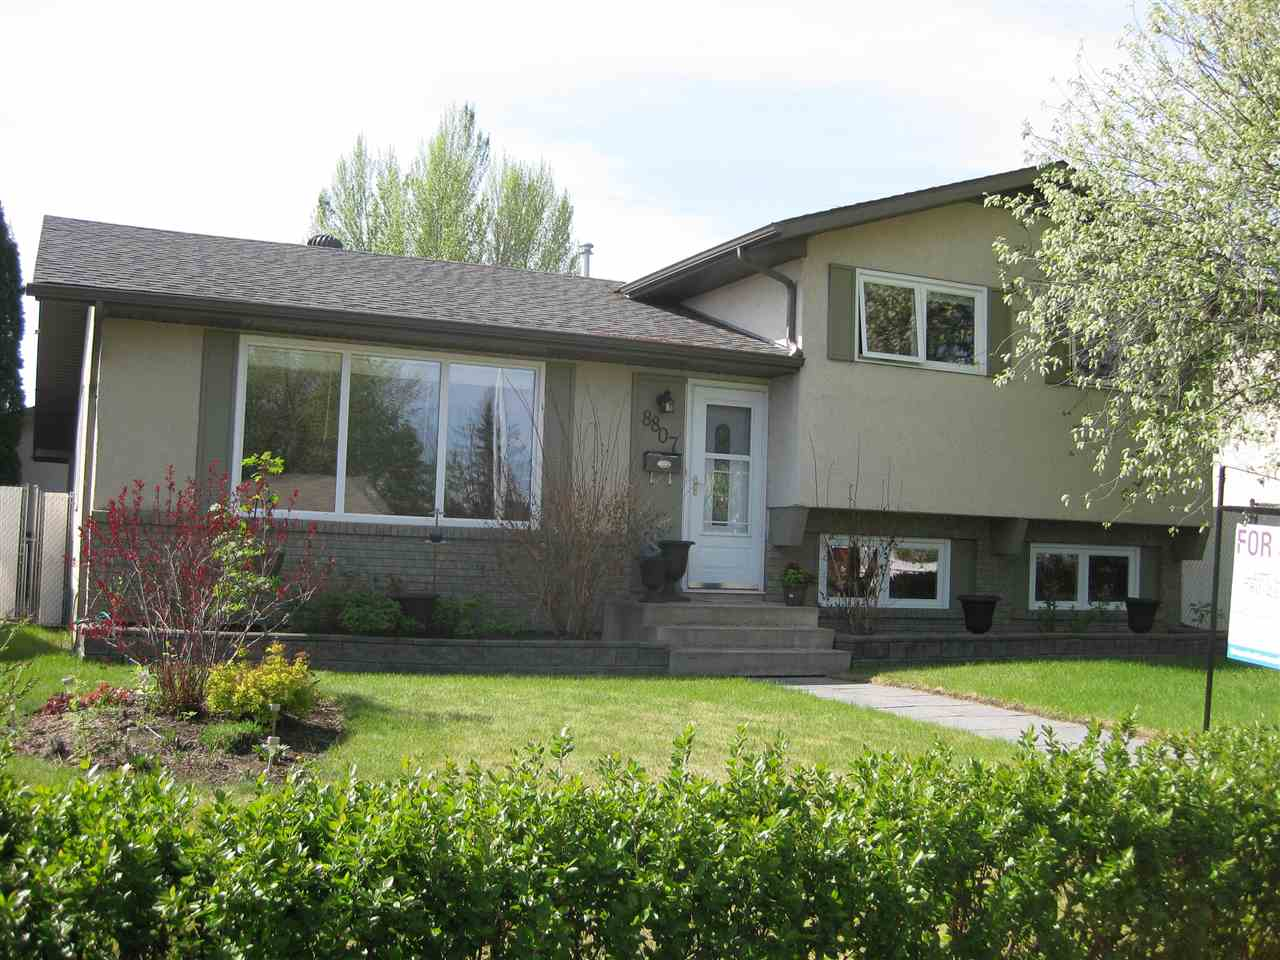 8807 22 Avenue NW, 3 bed, 2.1 bath, at $399,700